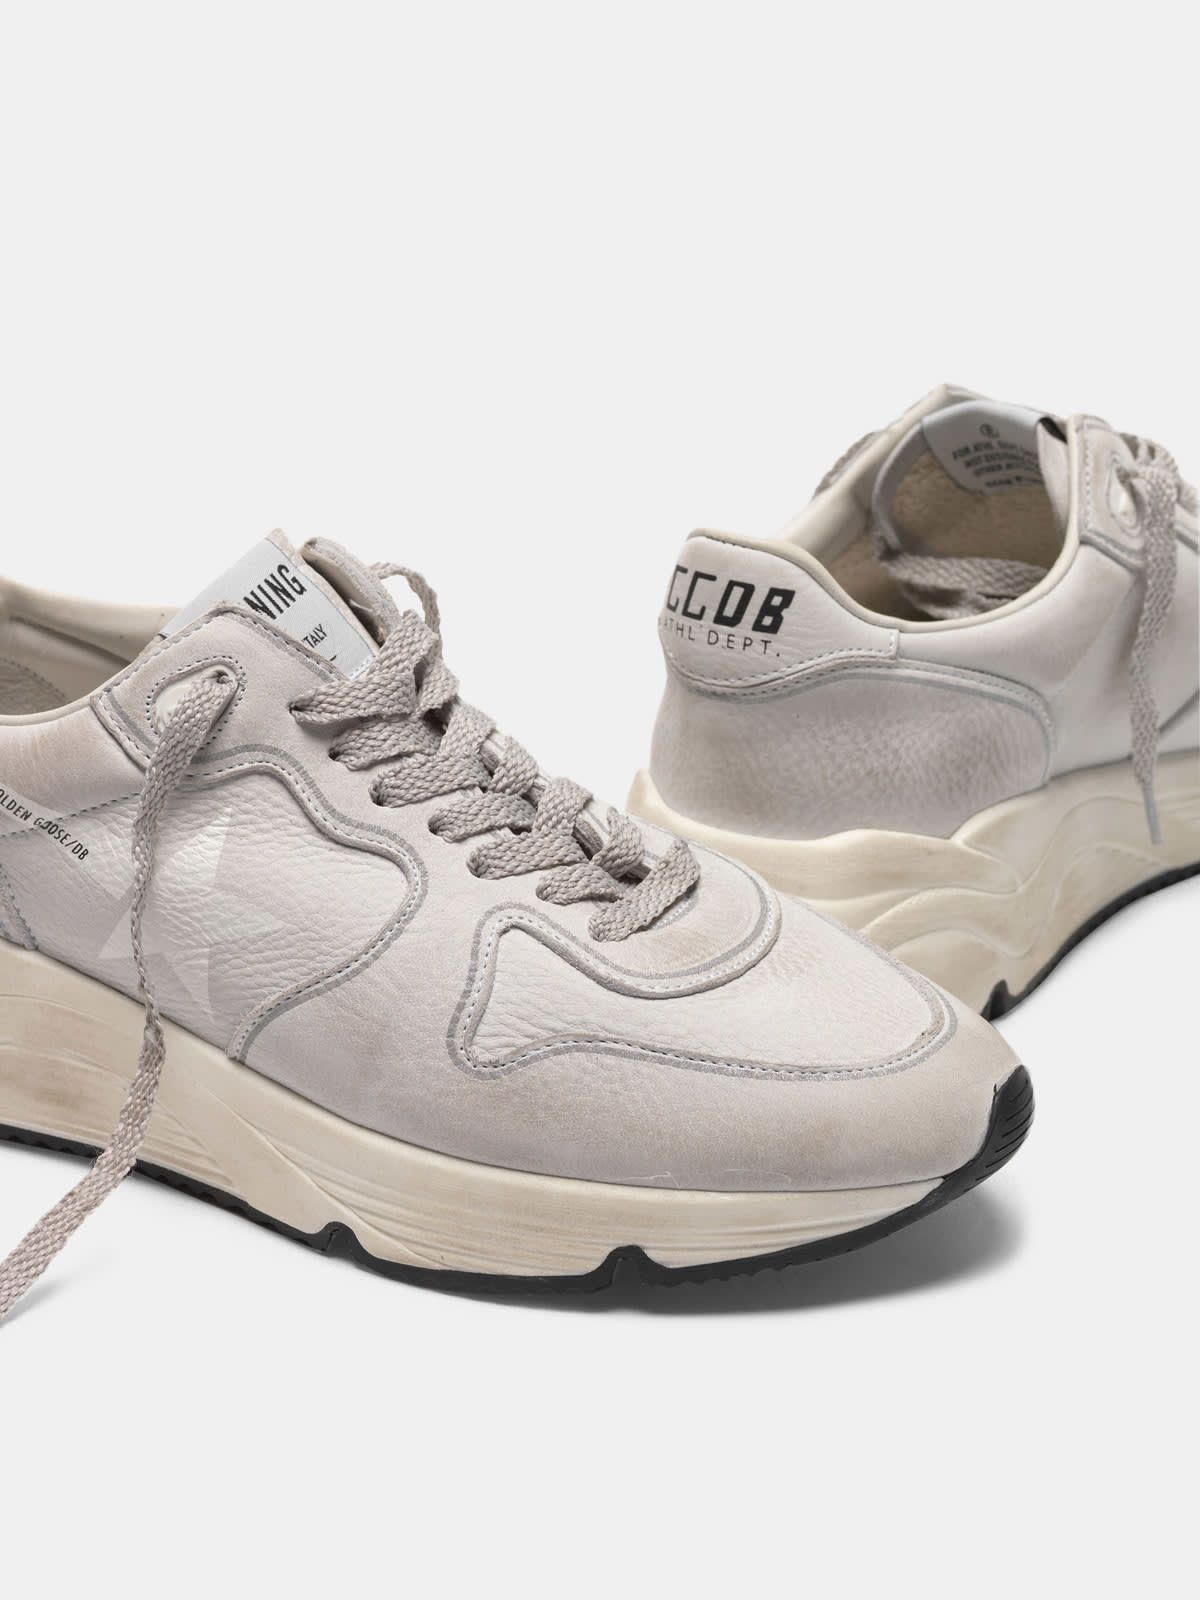 Running Sole sneakers in nubuck